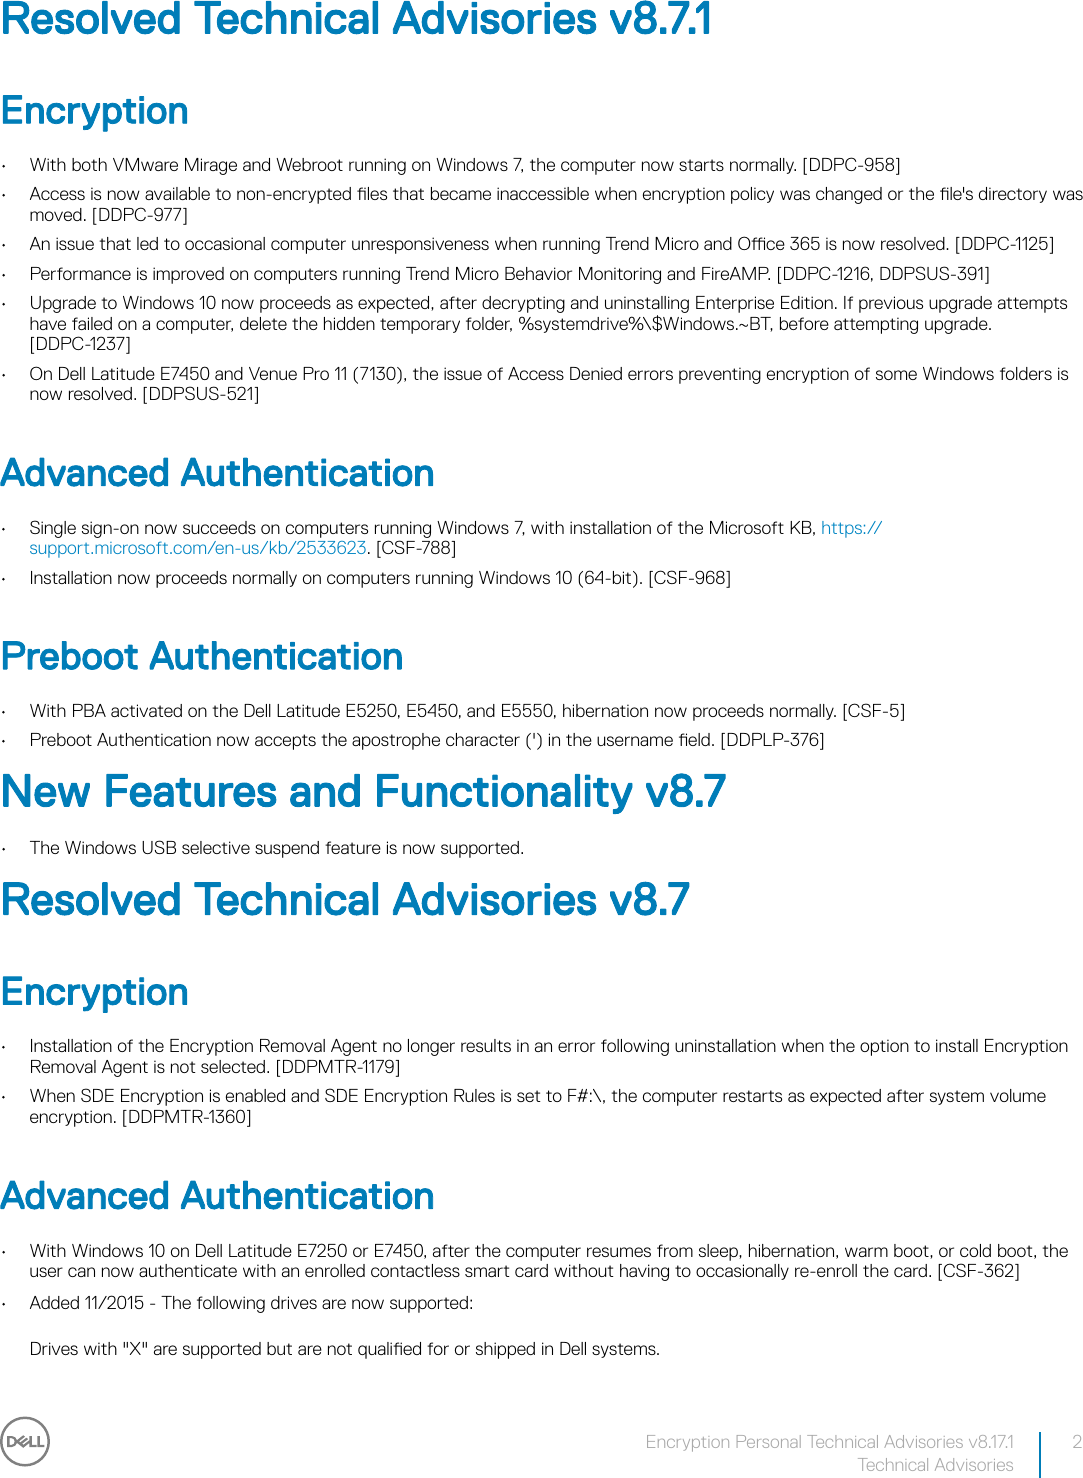 Dell data protection encryption Security Personal Technical